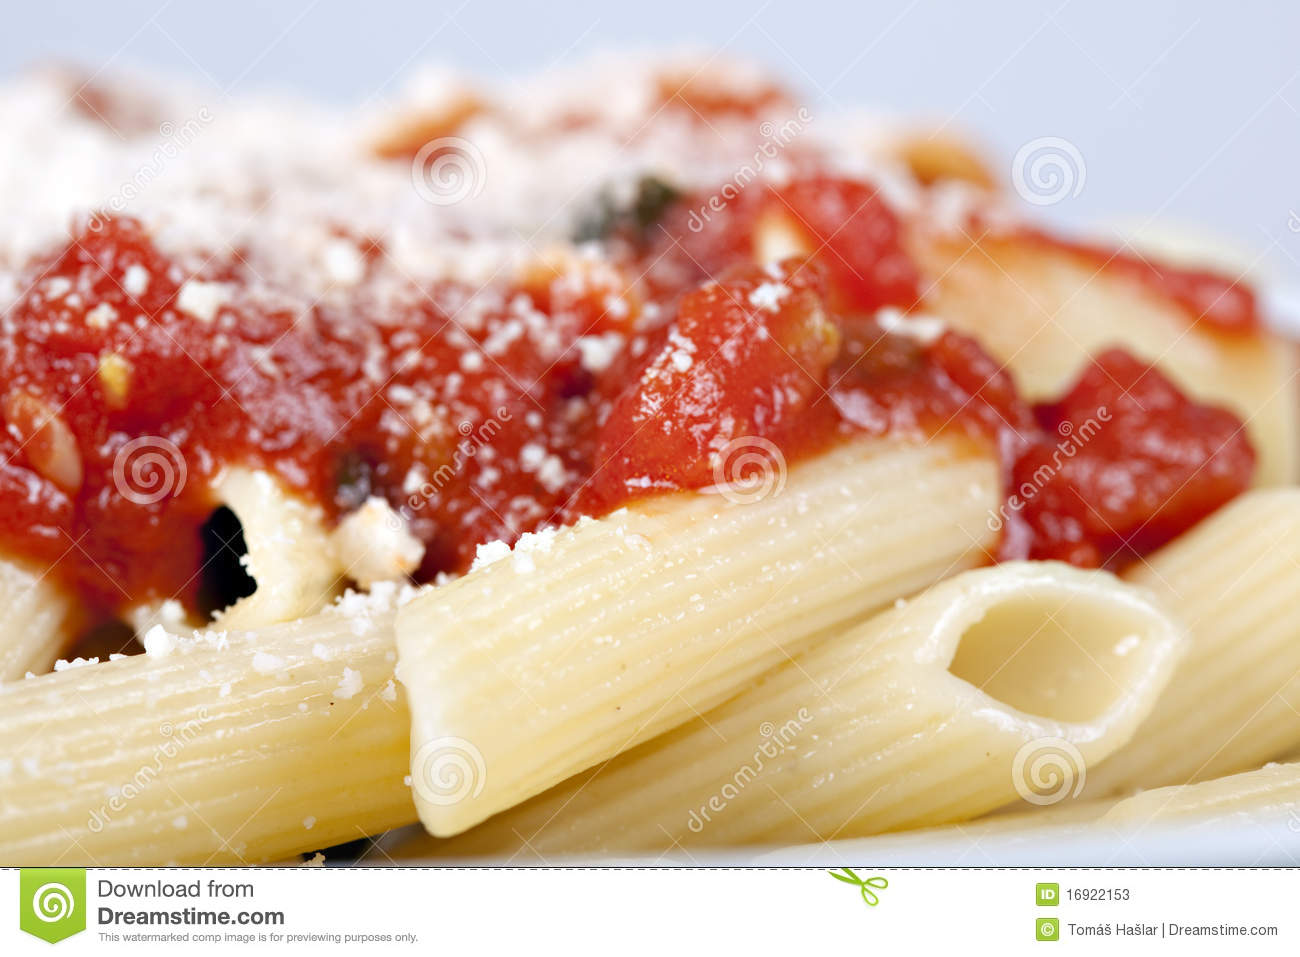 Pasta with tomato sauce and grated parmesan.